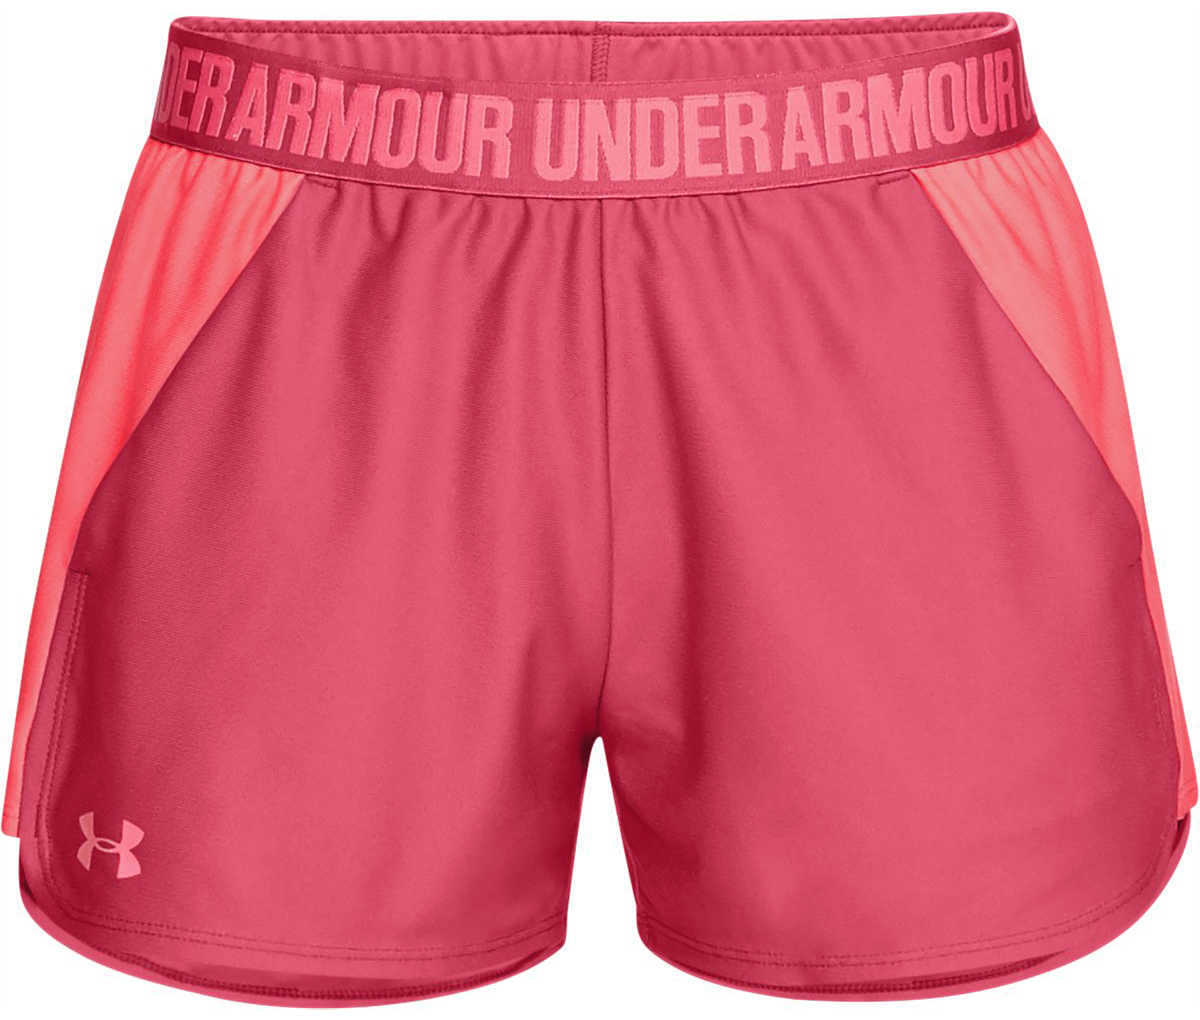 Under Armour Play Up 2.0 Shorts Pink GOOFASH 312508